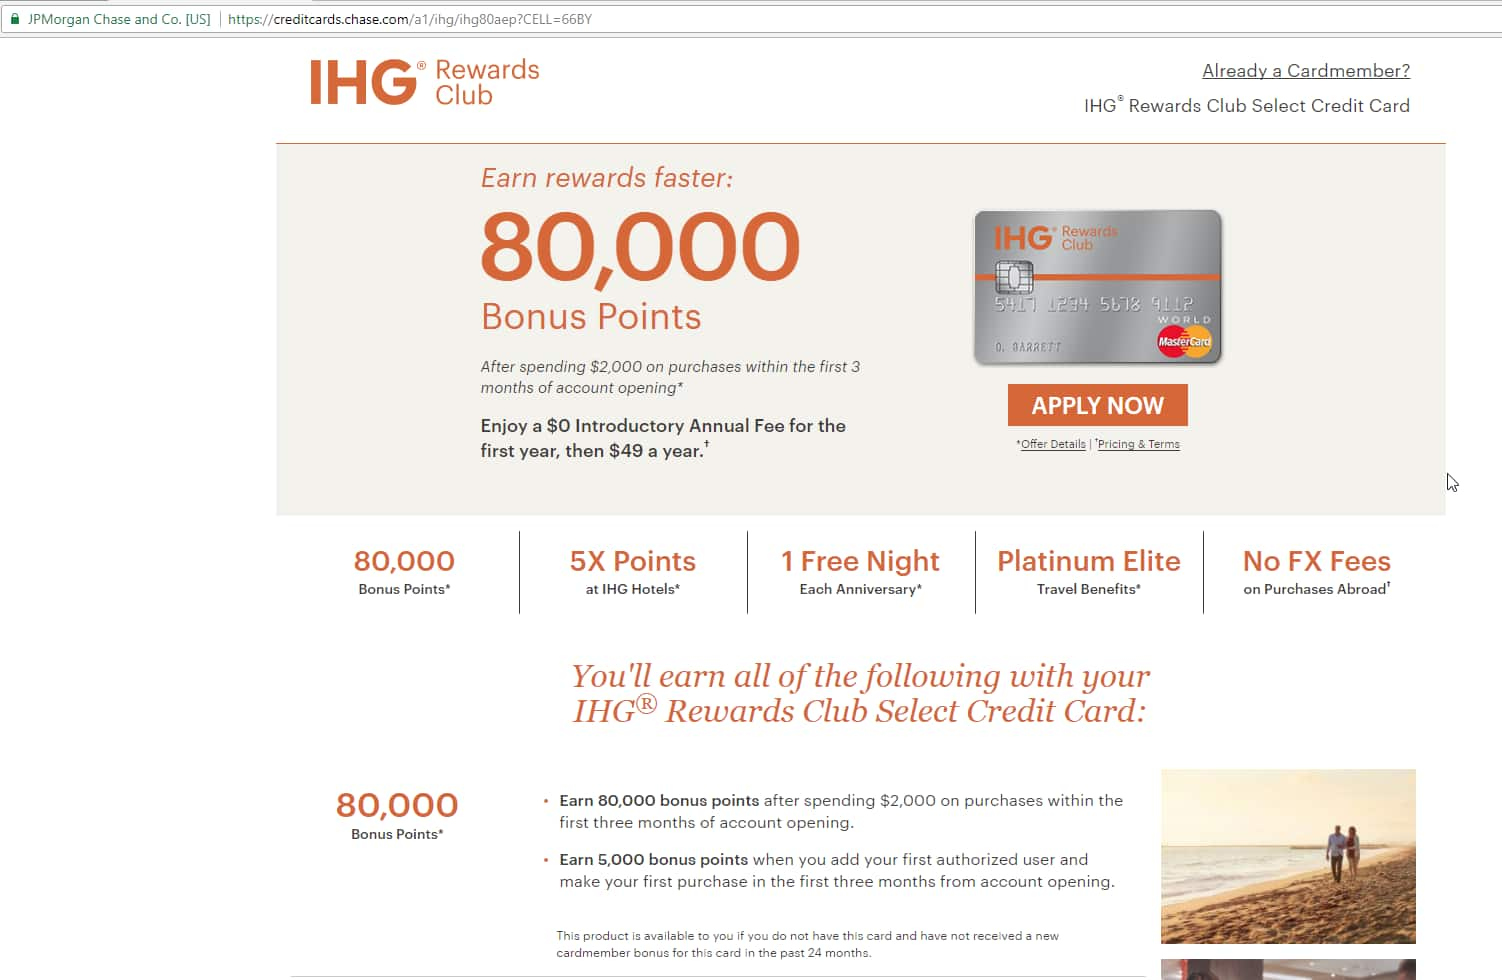 Chase IHG Rewards Club Select Credit Card 85K (80K + 5K) Points w/ $2k Spent in 1st 3-Months